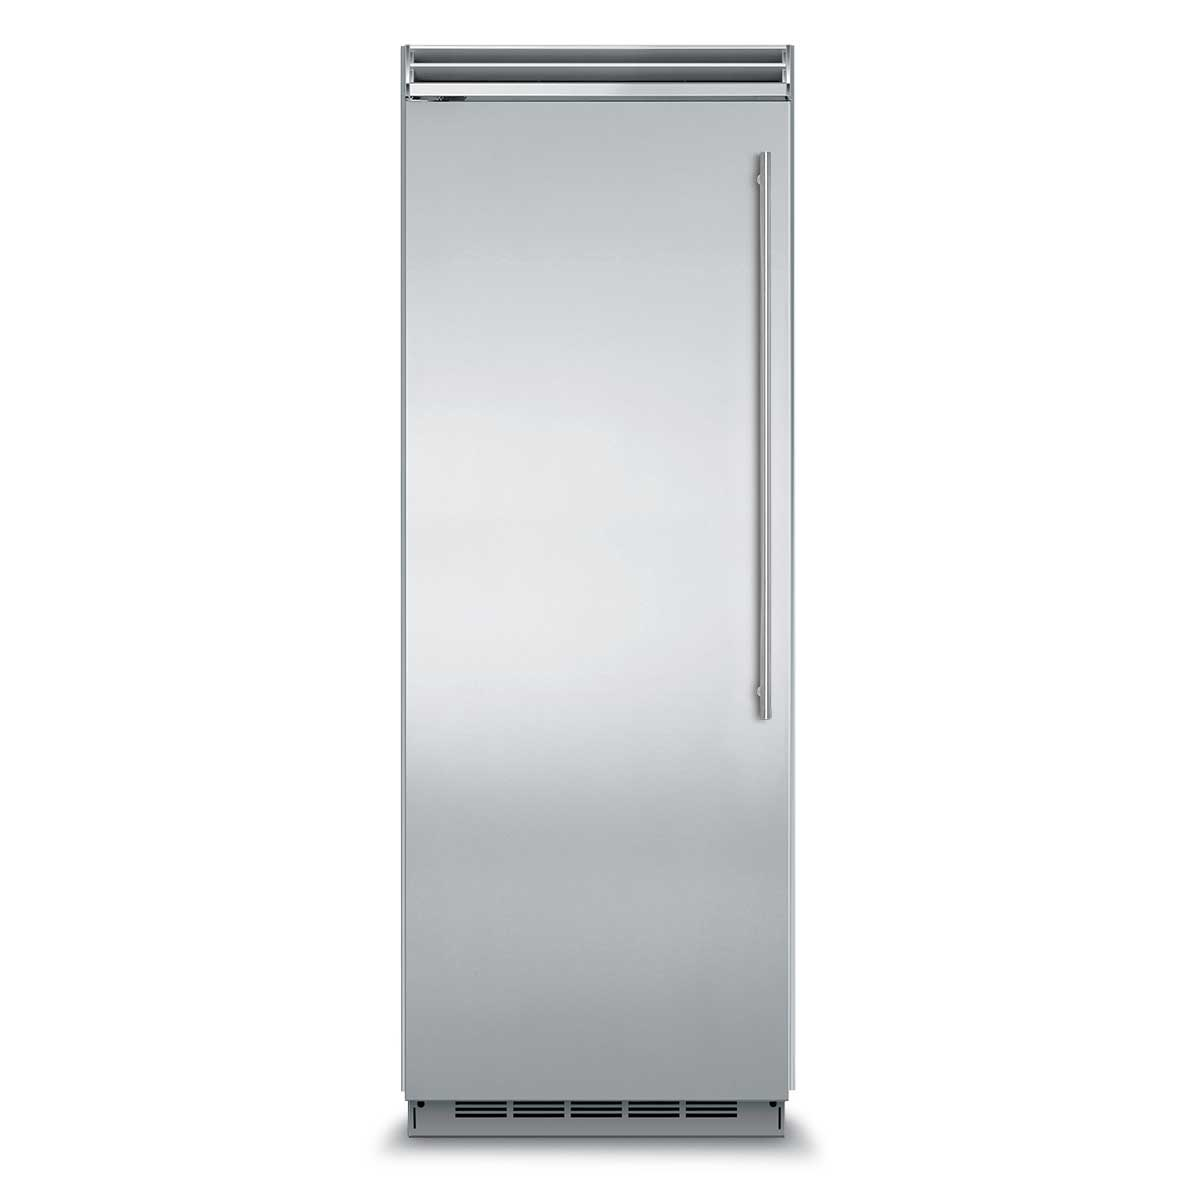 "Marvel  Marvel Professional Built-In 30"" All Refrigerator- Solid Stainless Steel Door   Left Hinge, Slim Designer Handle"